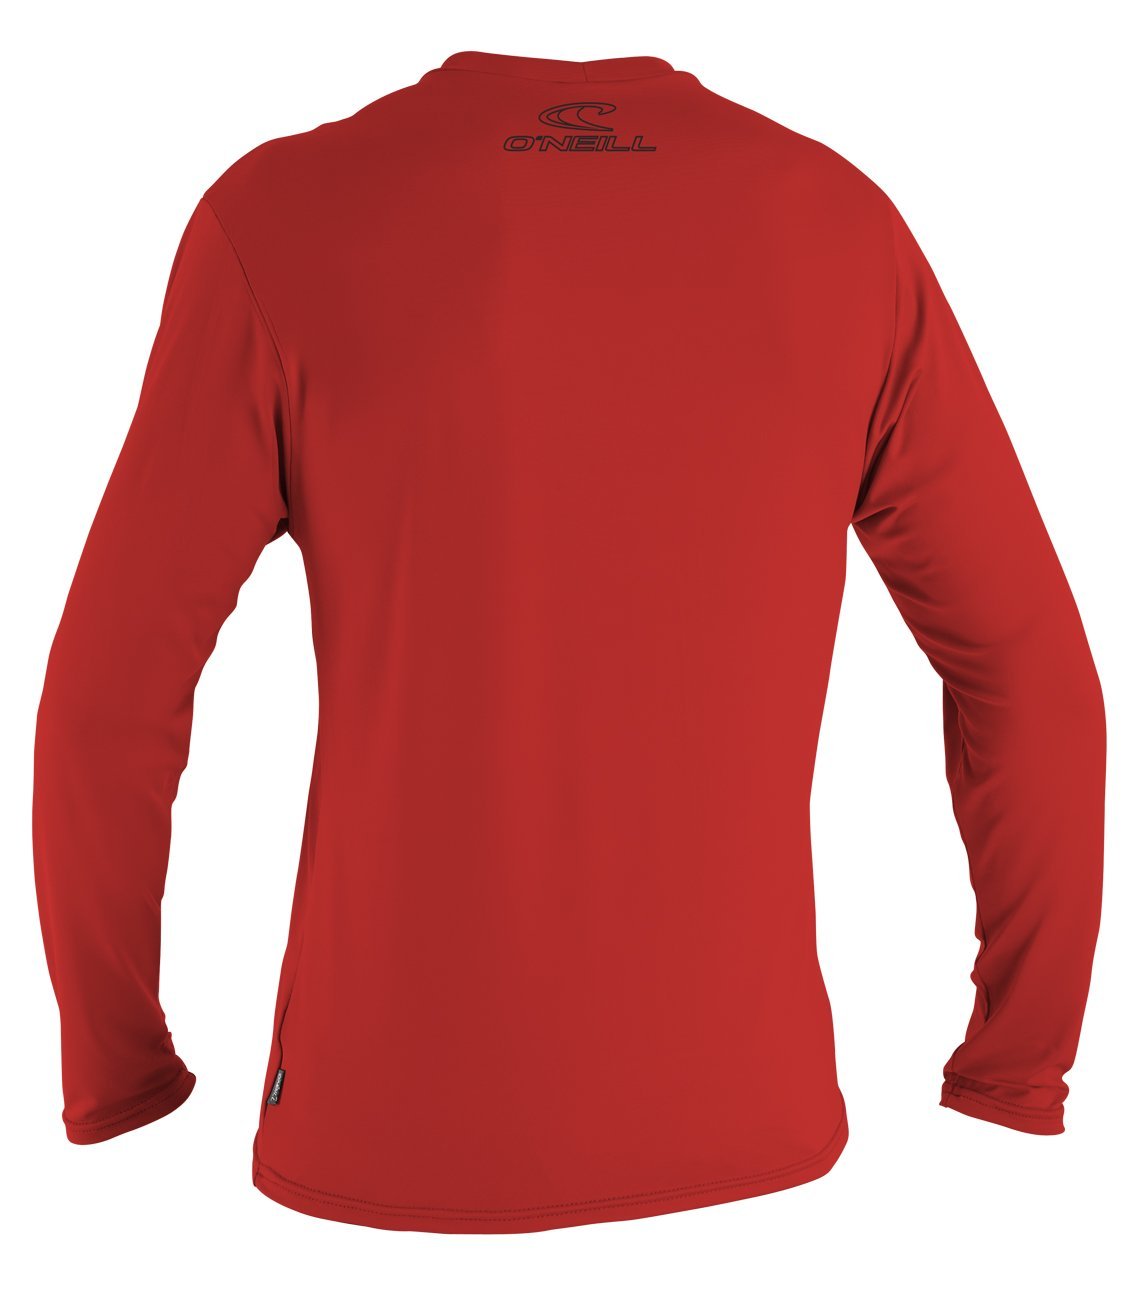 O'Neill  Men's Basic Skins UPF 50+ Long Sleeve Sun Shirt, Red, Small by O'Neill Wetsuits (Image #2)